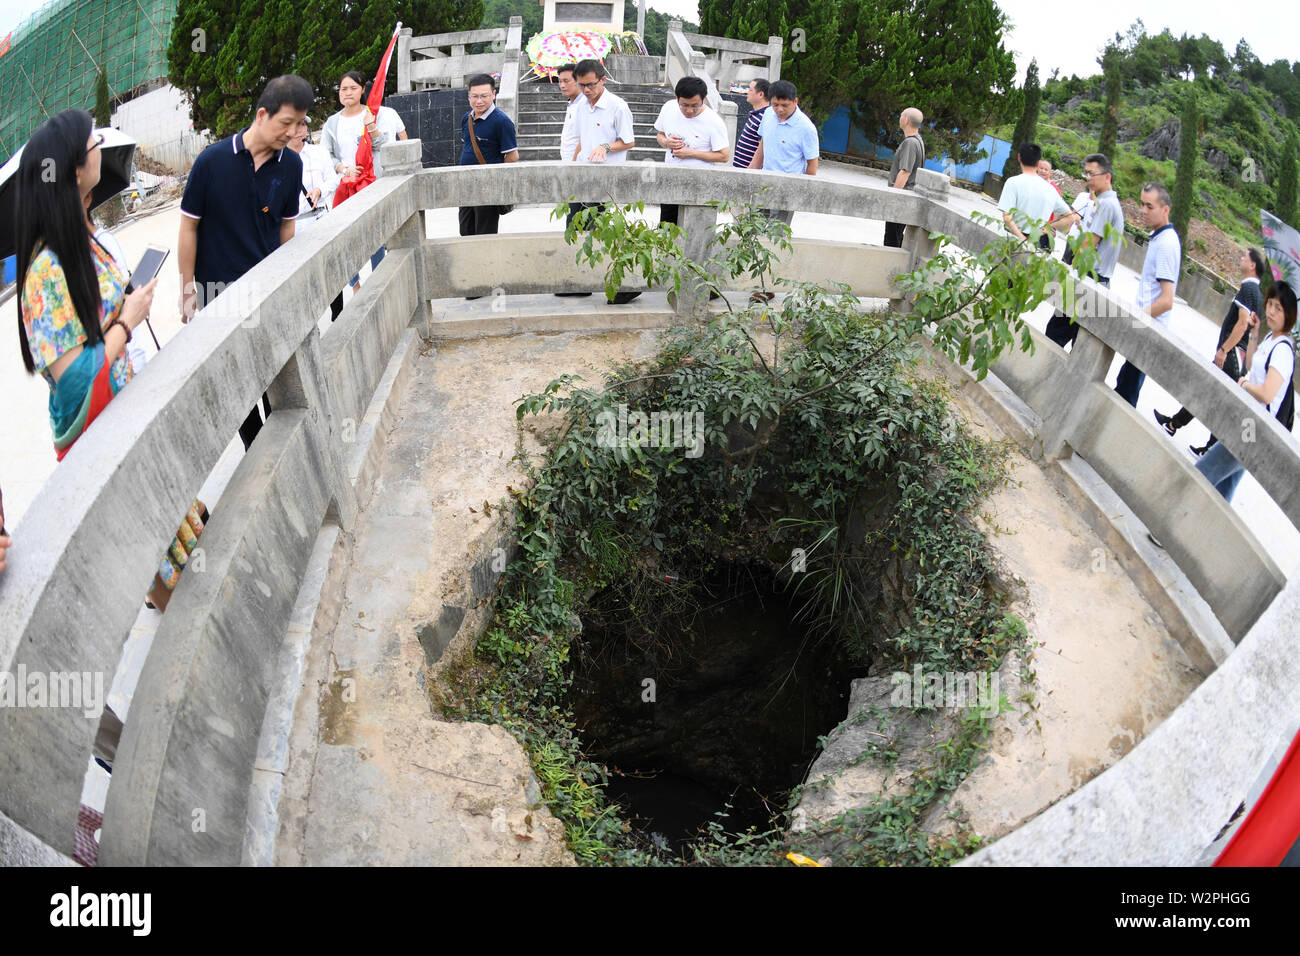 (190710) -- XING'AN, July 10, 2019 (Xinhua) -- Aerial photo taken on June 28, 2019 shows people touring the memorial garden that commemorates Red Army's soldiers who died in the battle of Xinxu in Guanyang County, south China's Guangxi Zhuang Autonomous Region. The Battle of Xinxu was one of the three major block battles fought in Guangxi, which had brought time for the Red Army to cross the Xiangjiang River. Memorial halls and martyrs' cemeteries are springing up in many revolutionary places over the past few years, especially those along the Long March route. Visitors from all over China - Stock Image